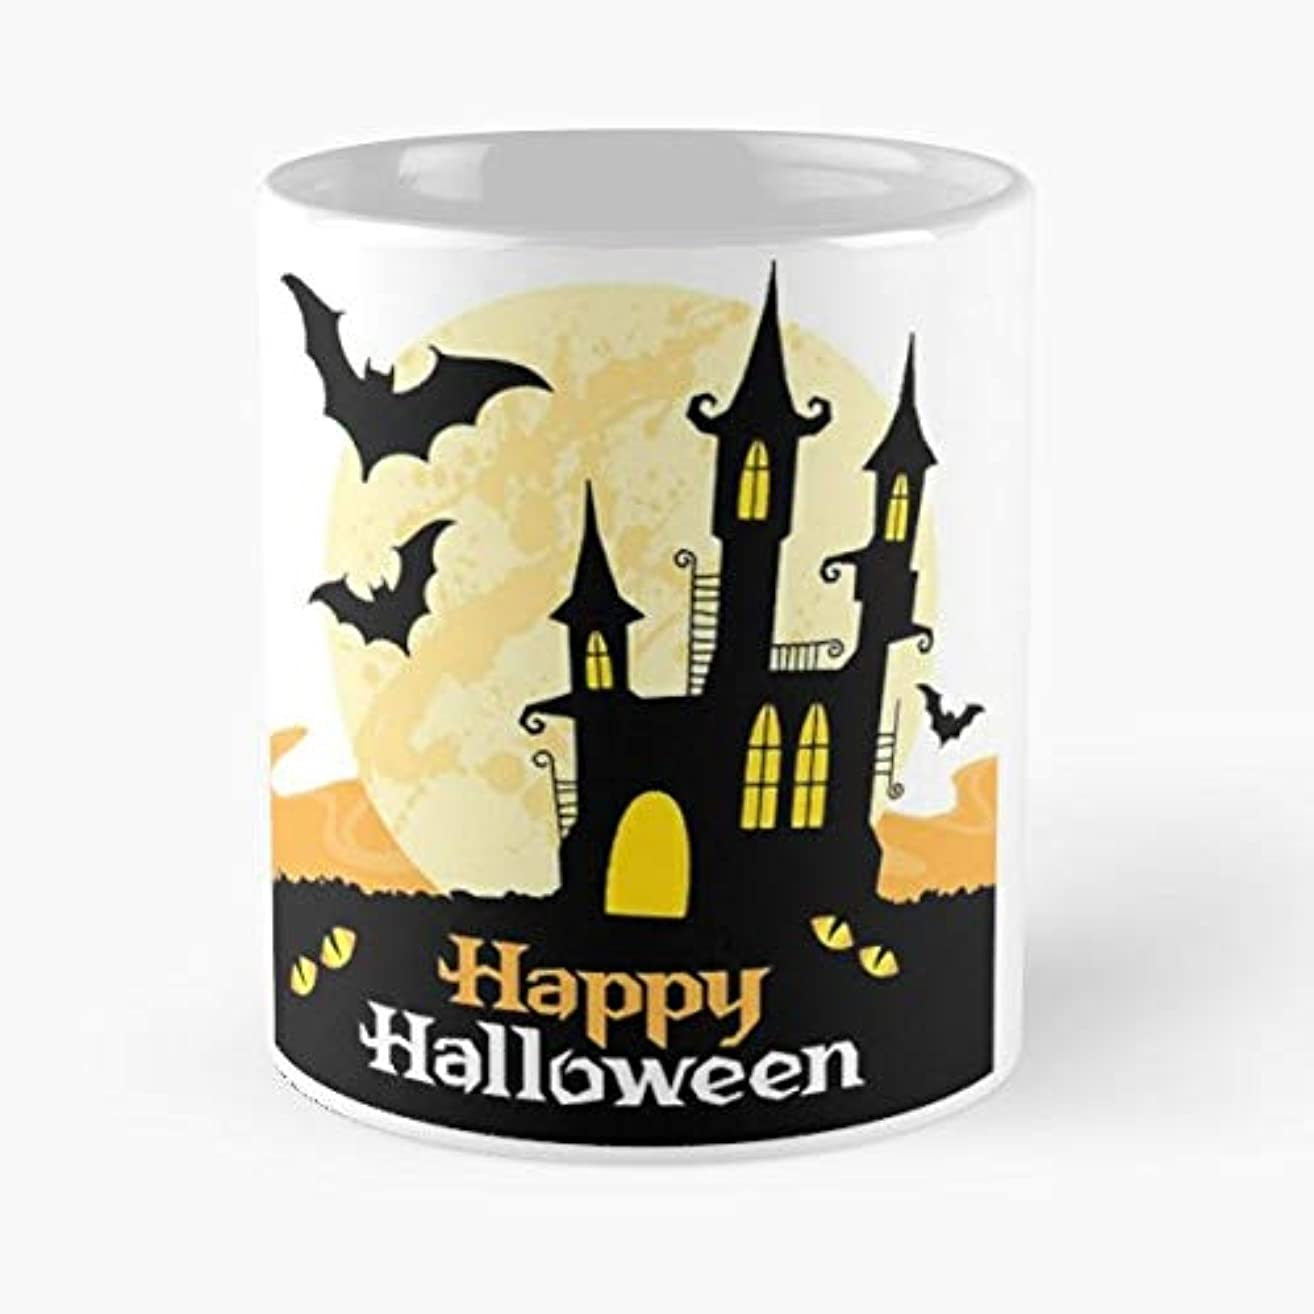 Halloween Cat Scary Screem Spooky Witche Spider - 11 Oz Coffee Mugs Unique Ceramic Novelty Cup, The Best Gift For Halloween.